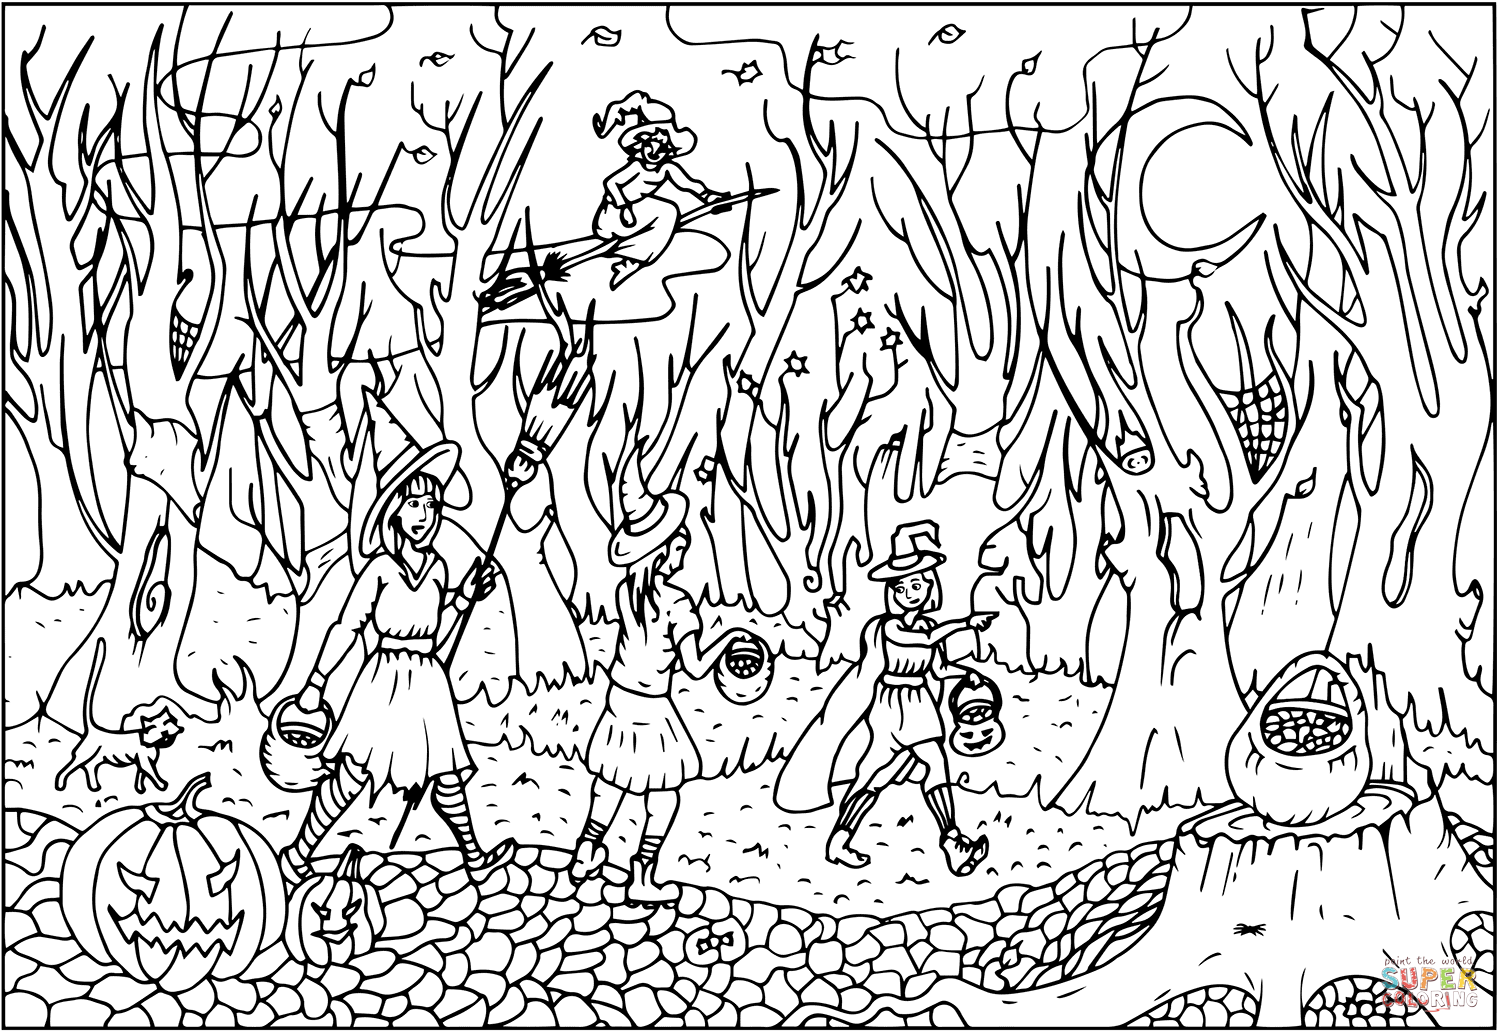 Halloween Witches Going On Party Through The Creepy Woods